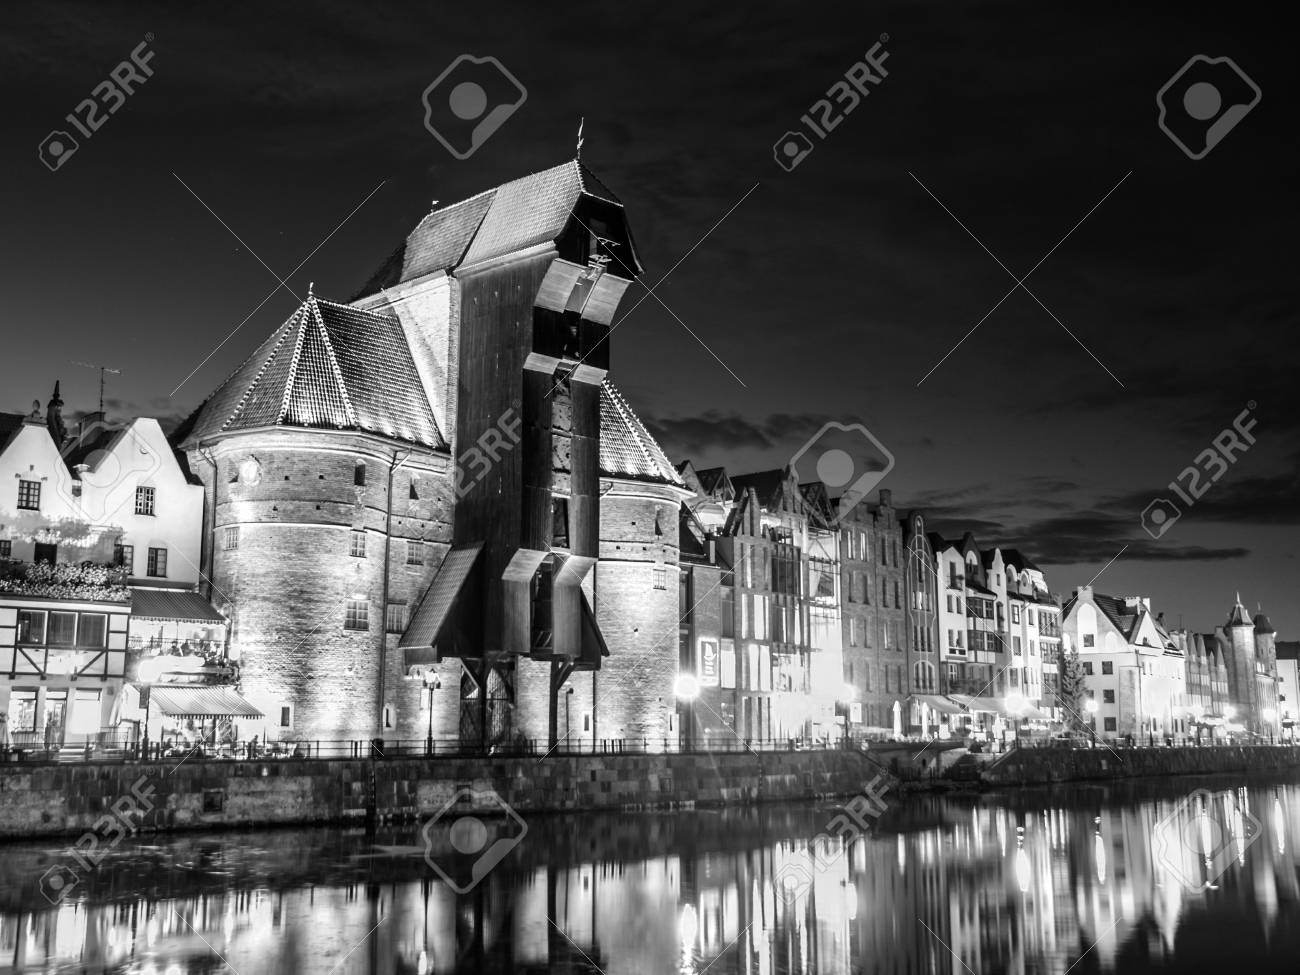 Gdansk by night with old crane and reflection in motlawa river poland black and